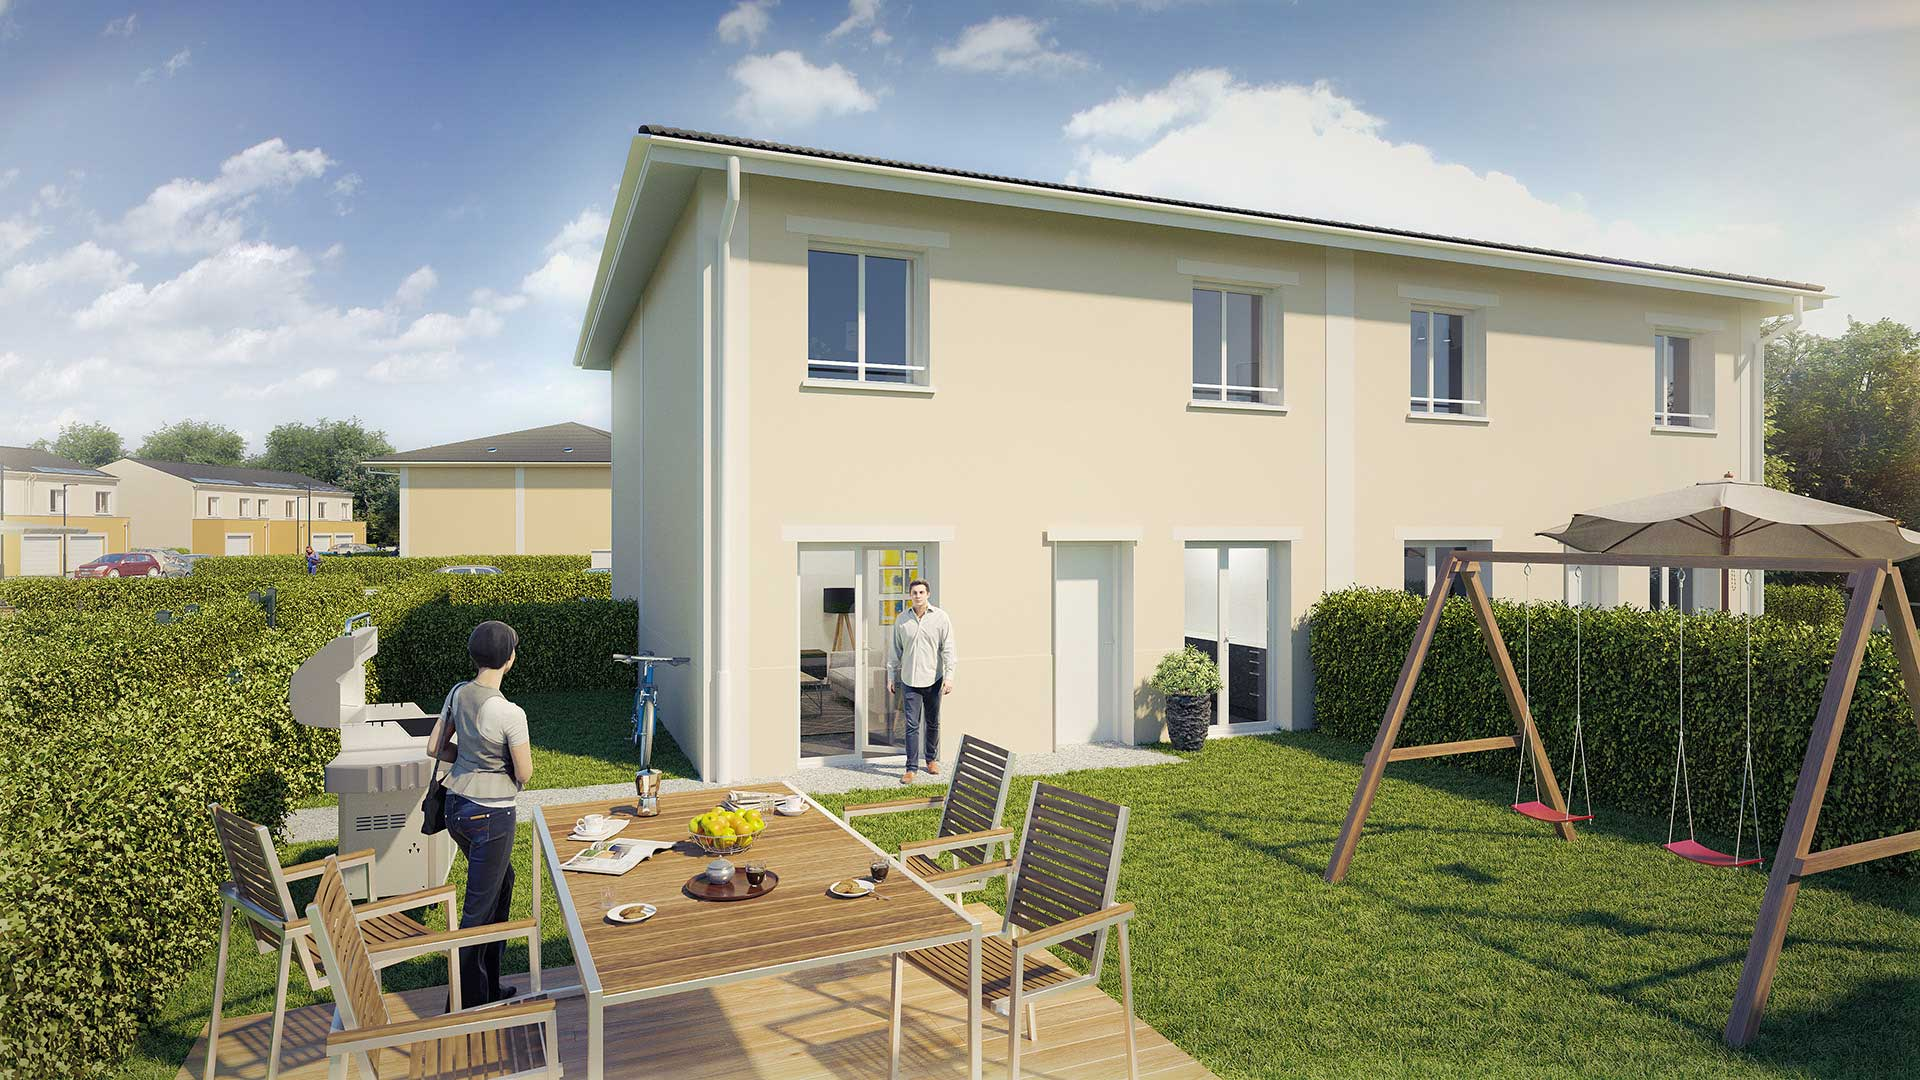 Creation of a 3D image of a terrace for the real estate promotion of the property.